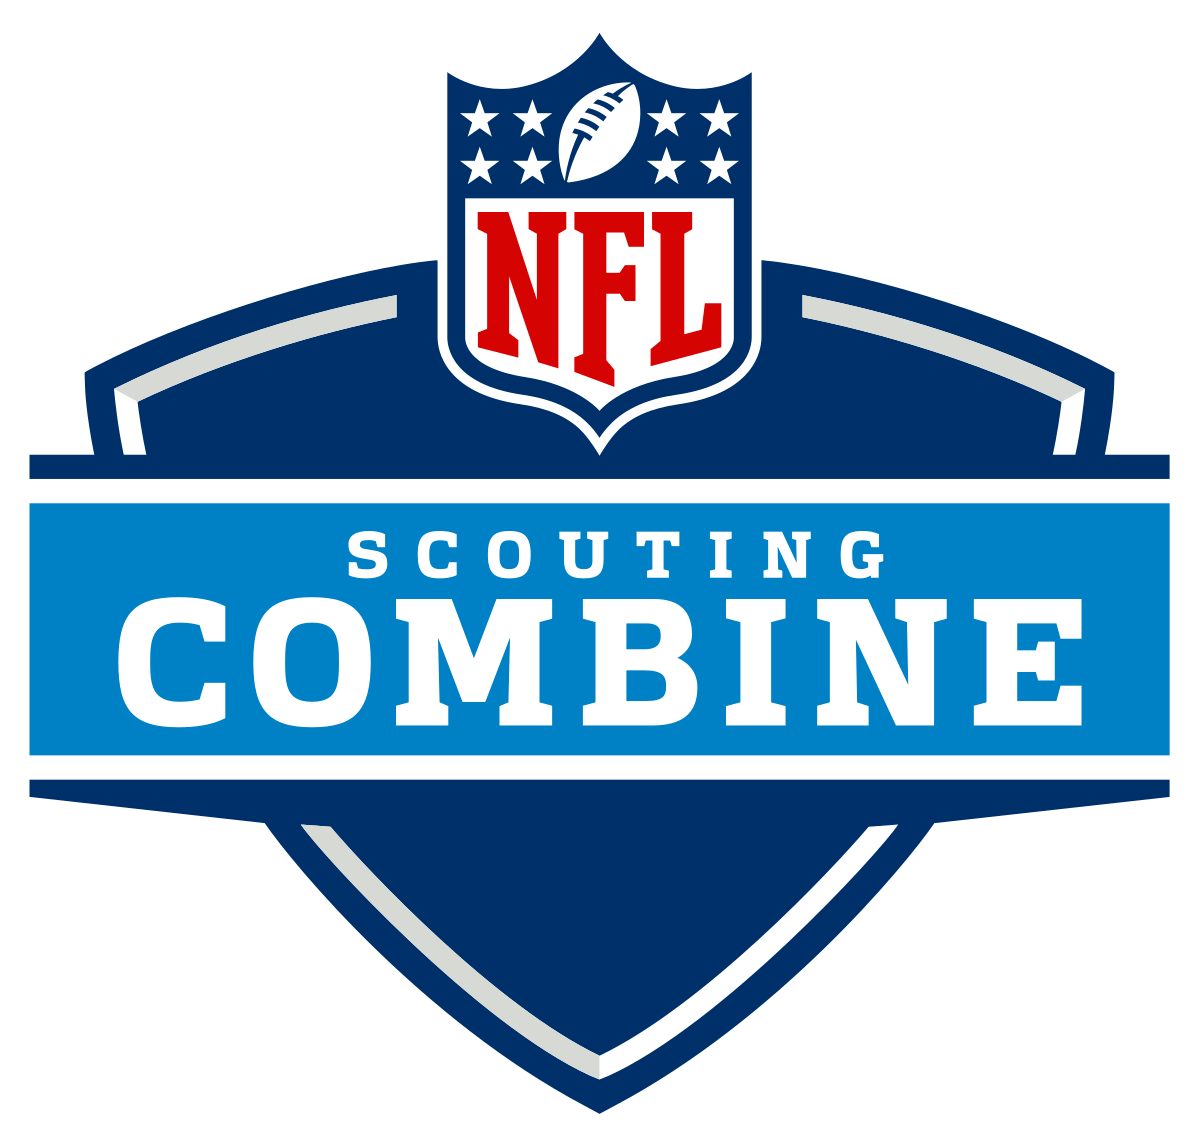 2018 nfl draft logo png. Prospects have been